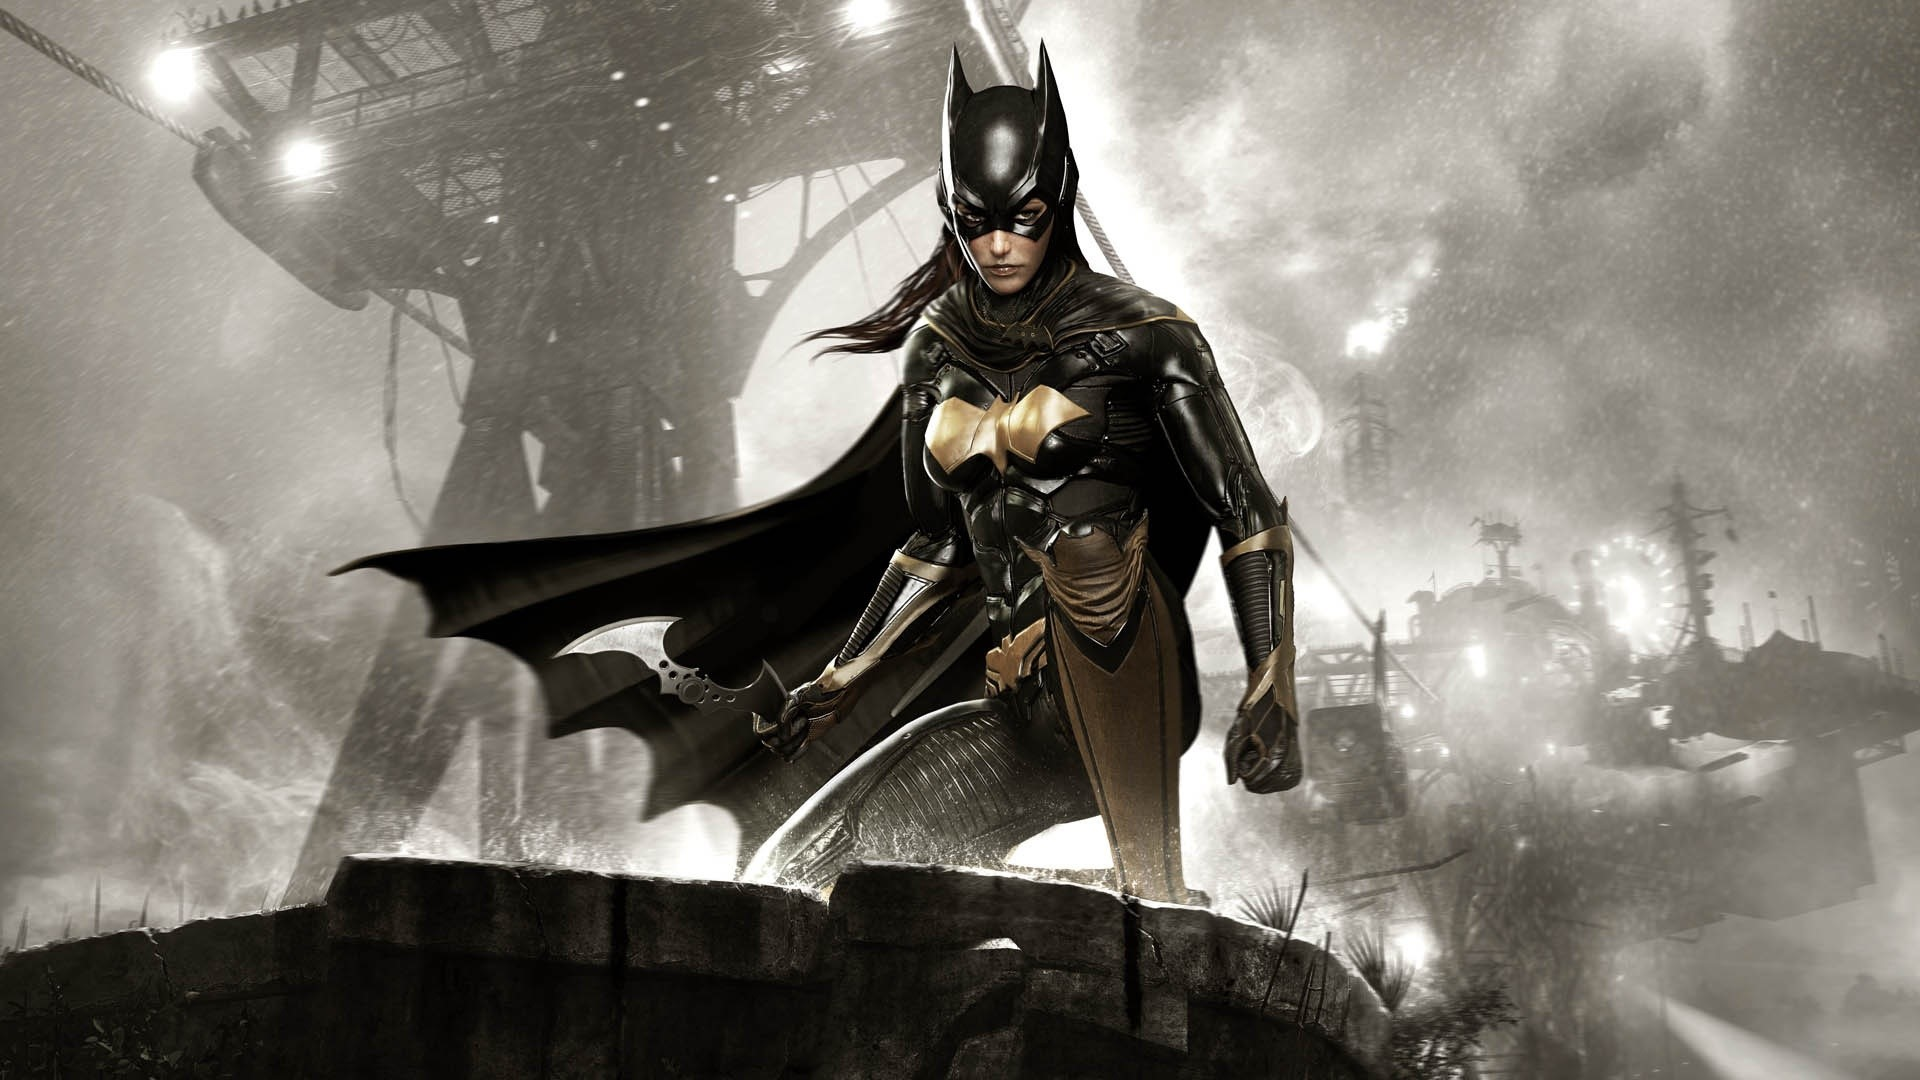 Wallpaper Batgirl in Batman Arkham Knight